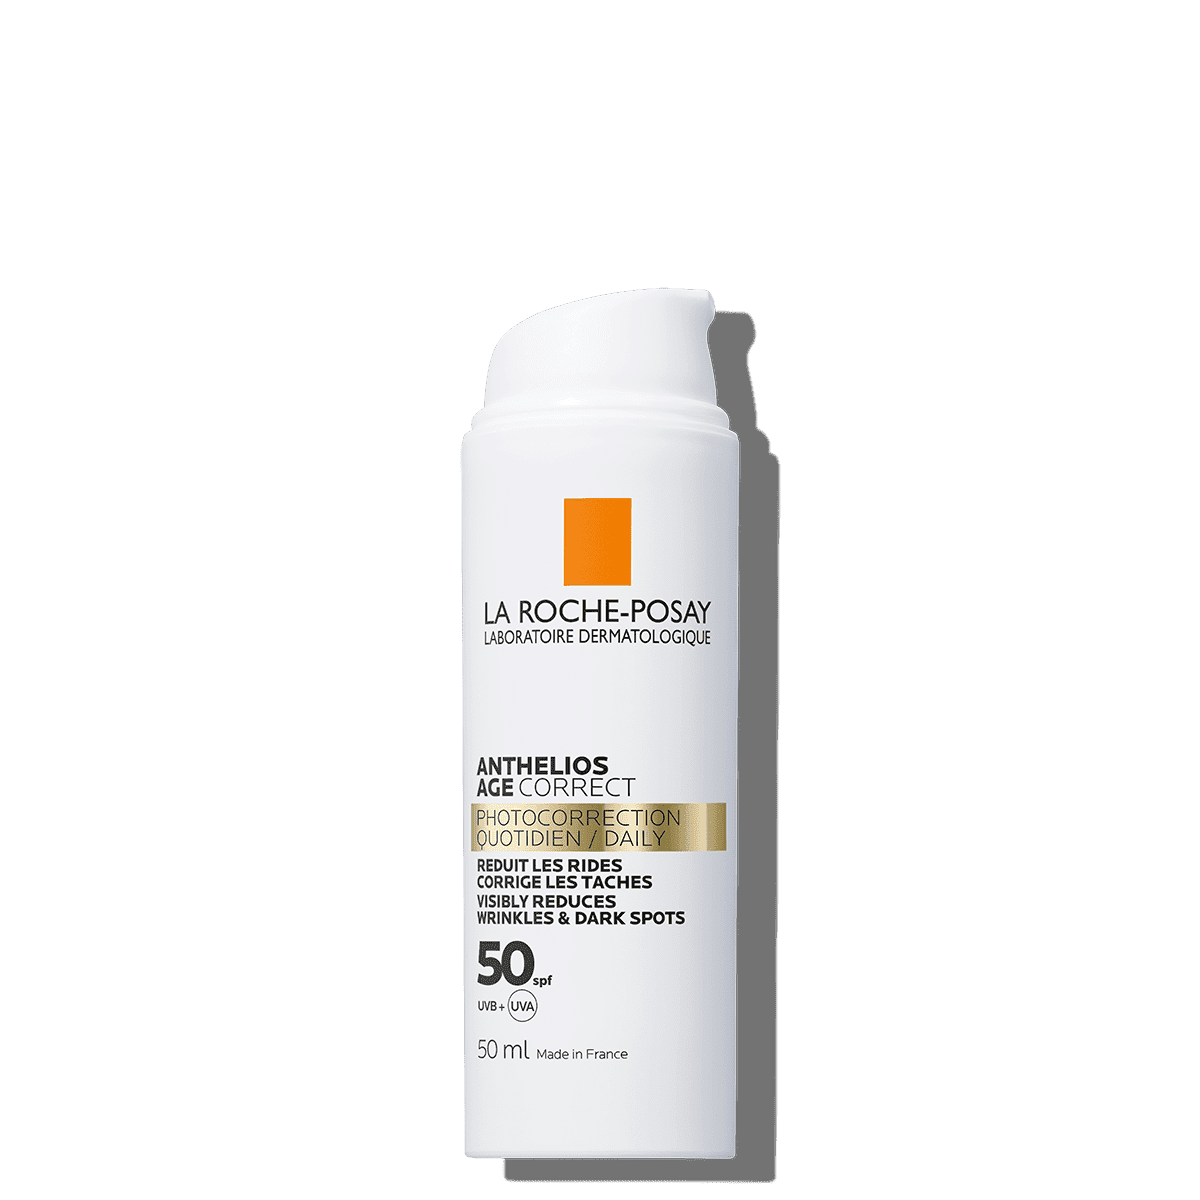 La-Roche-Posay-Anthelios-Age-Correct-SPF50-50ml-NoTeinted-LD-000-3337875761031-Open-FSS